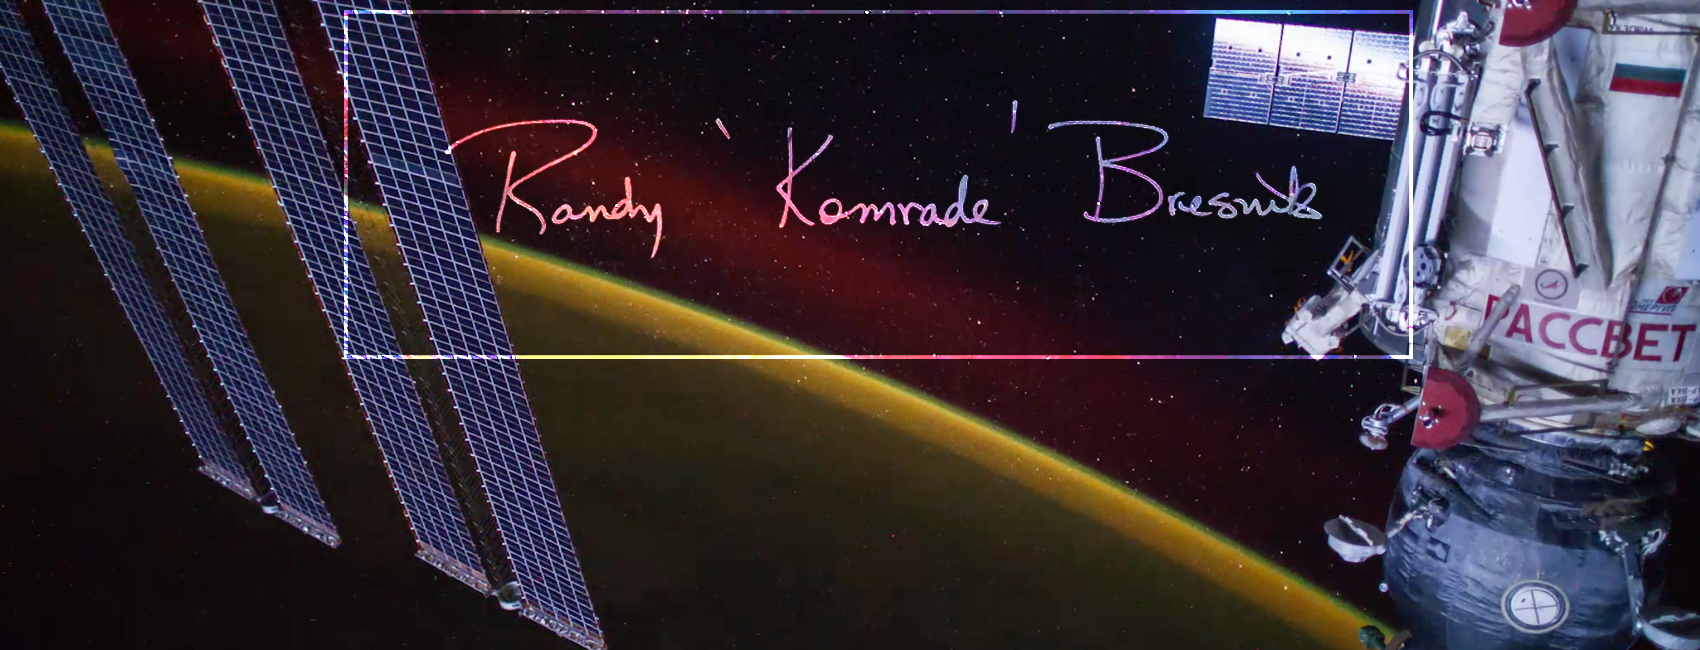 Signature on top of an image of the ISS.